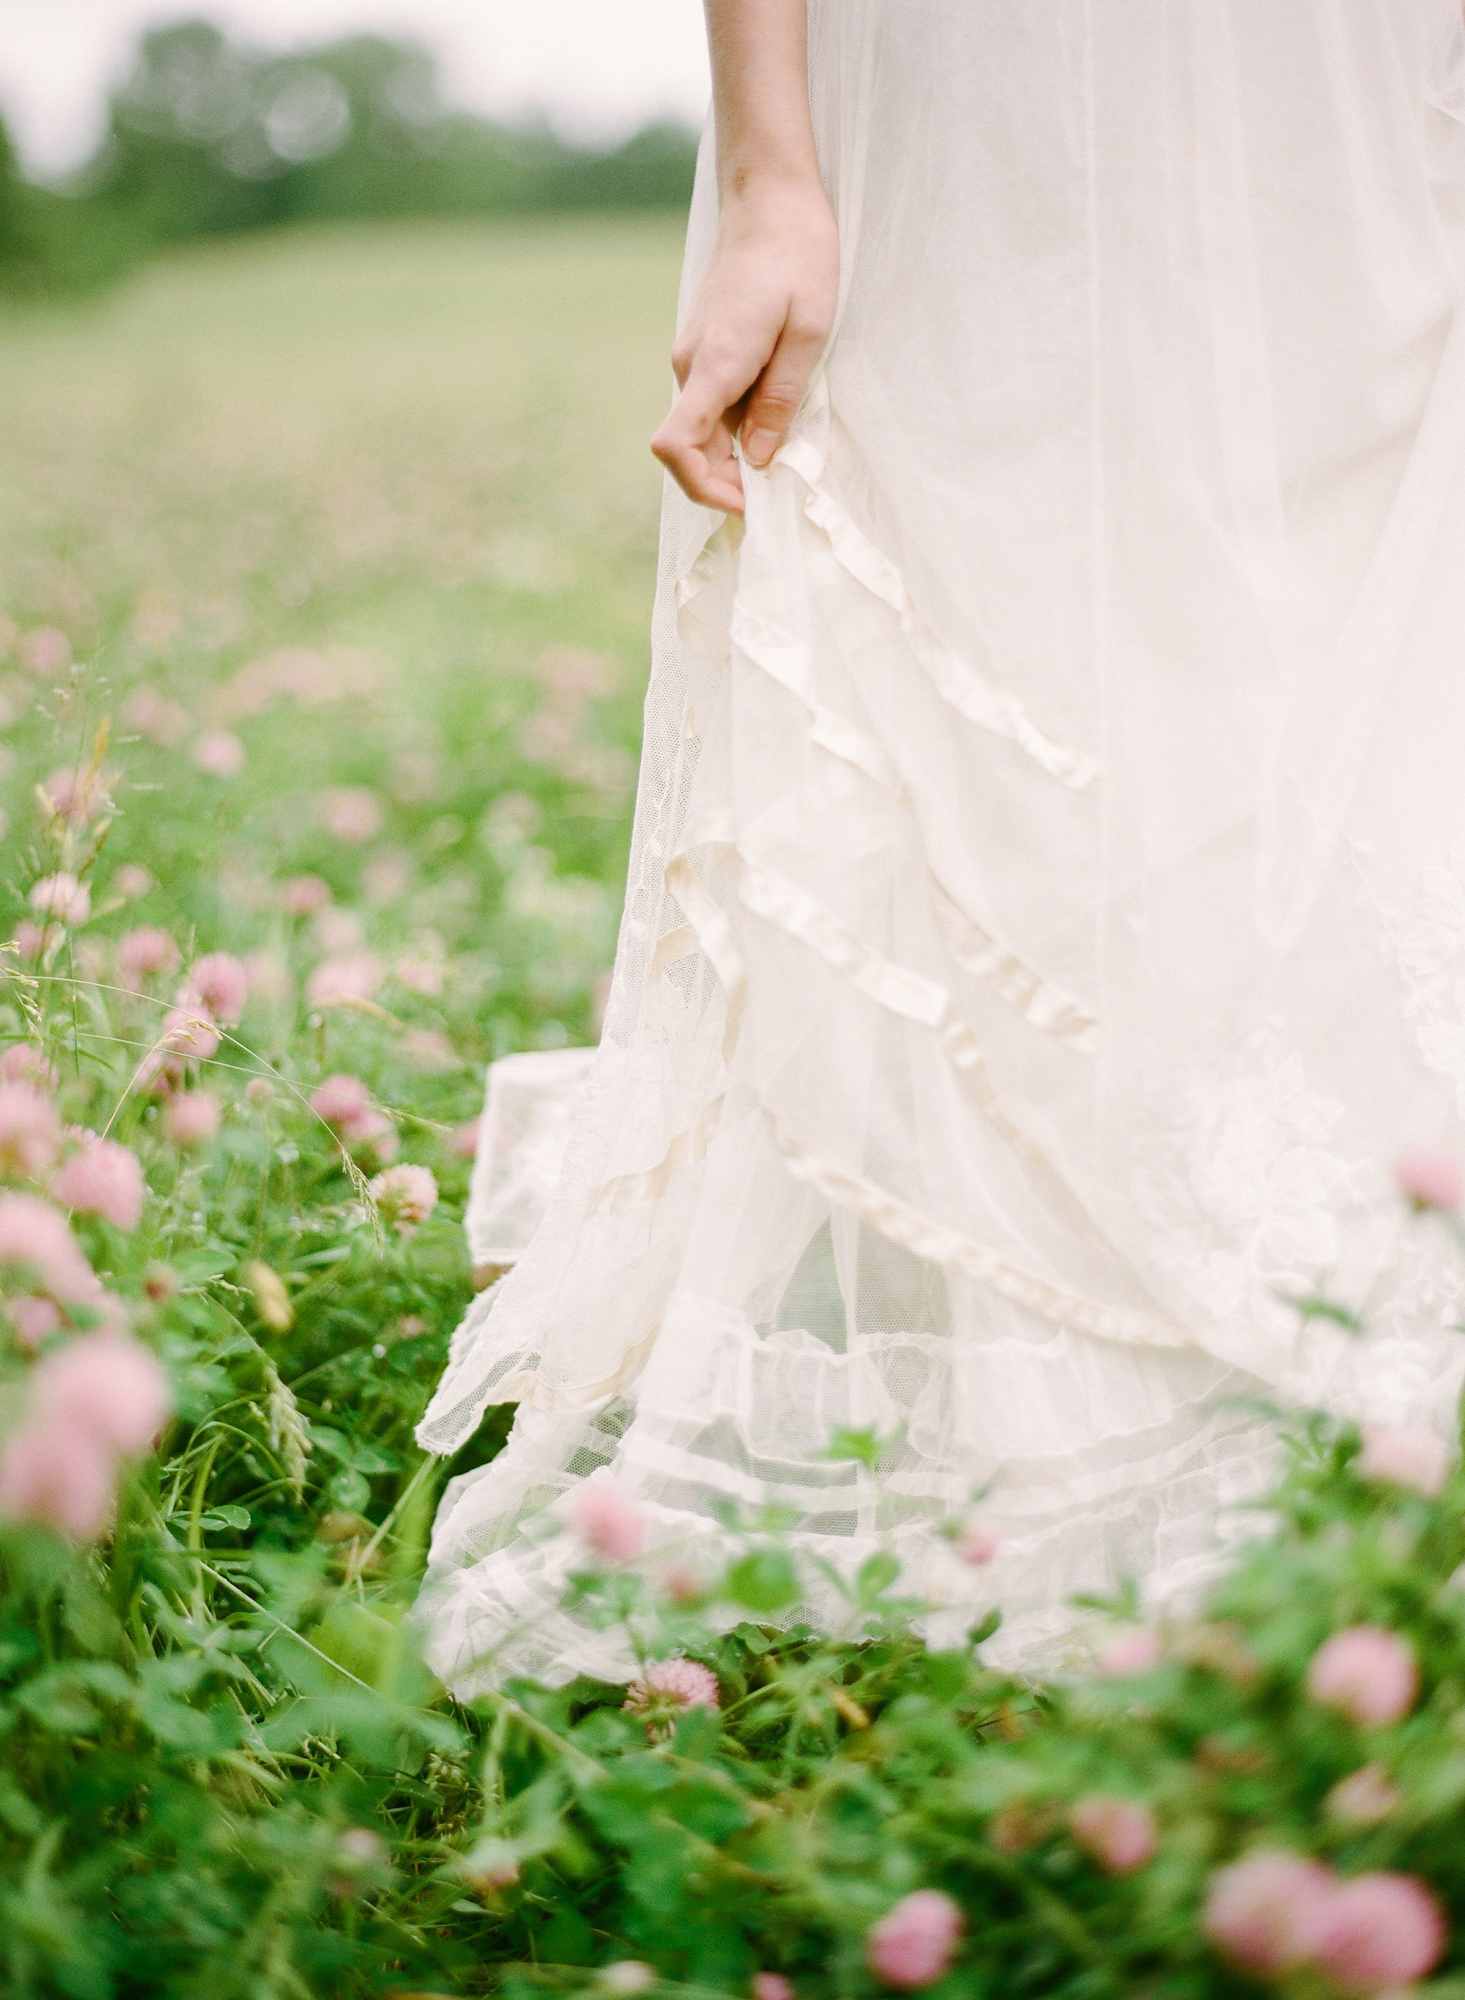 bride wearing petticoat standing in field of wildflowers